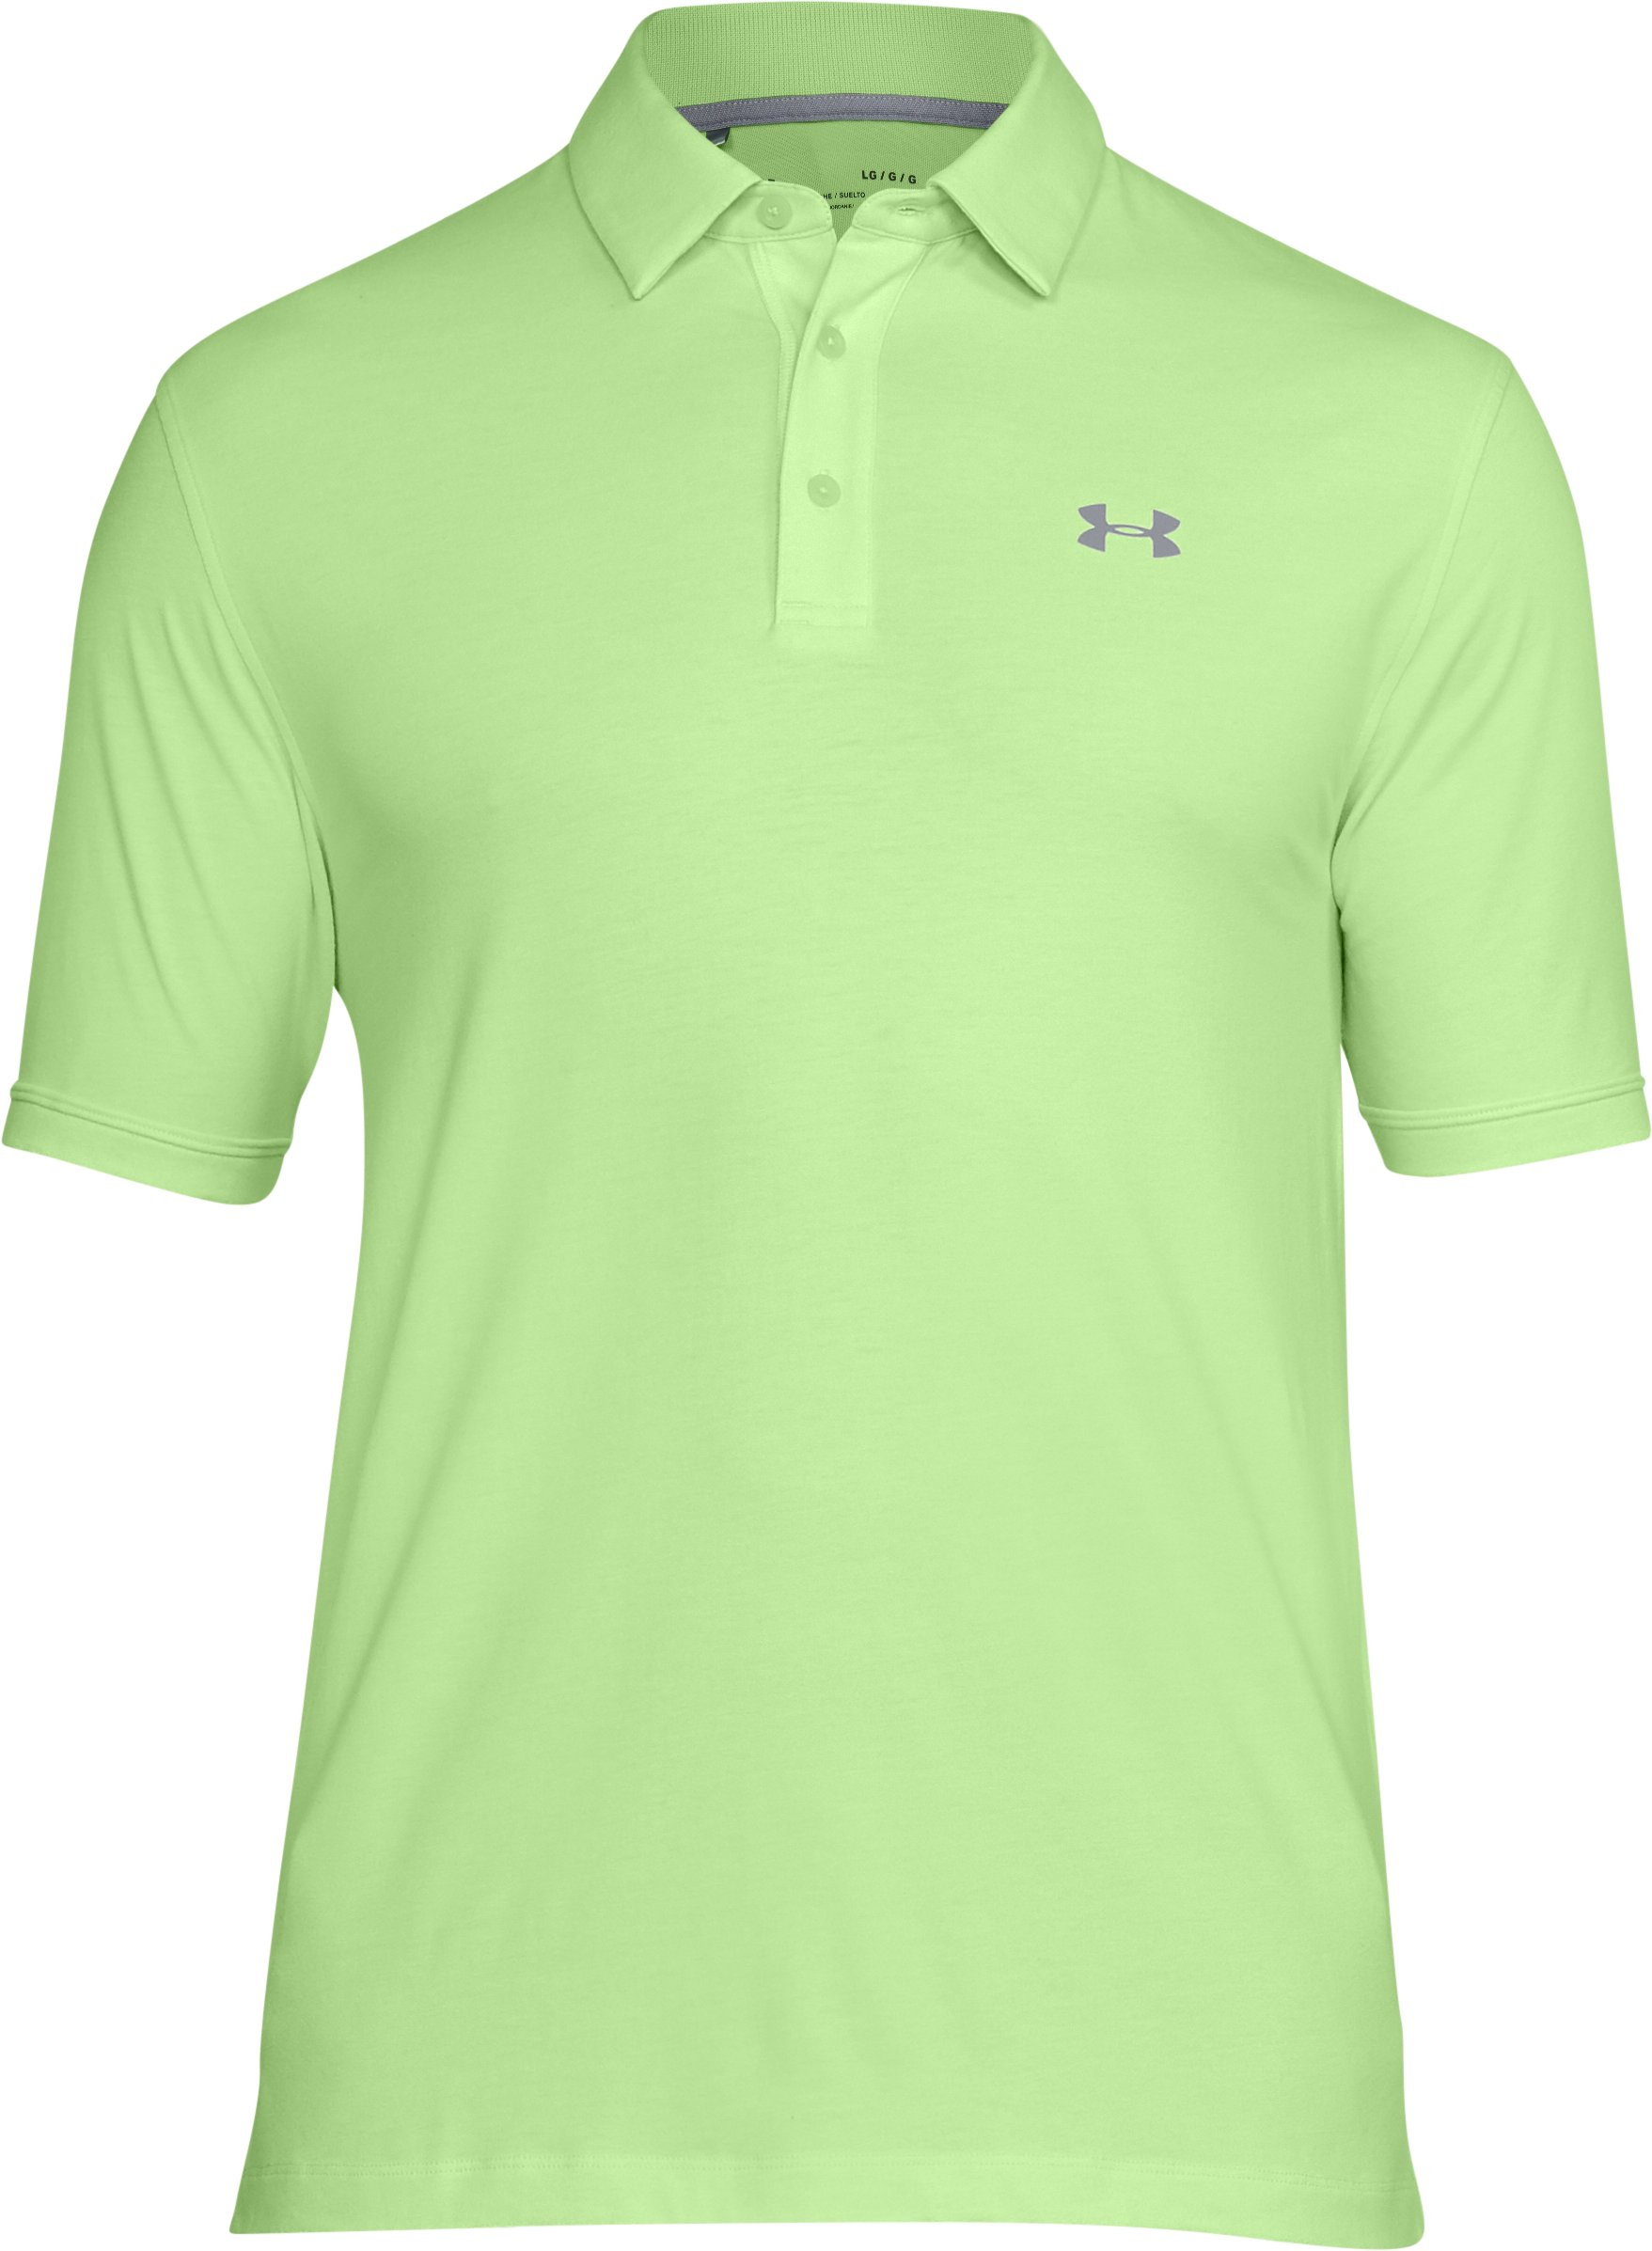 Men's Charged Cotton® Scramble Polo, LUMOS LIME,